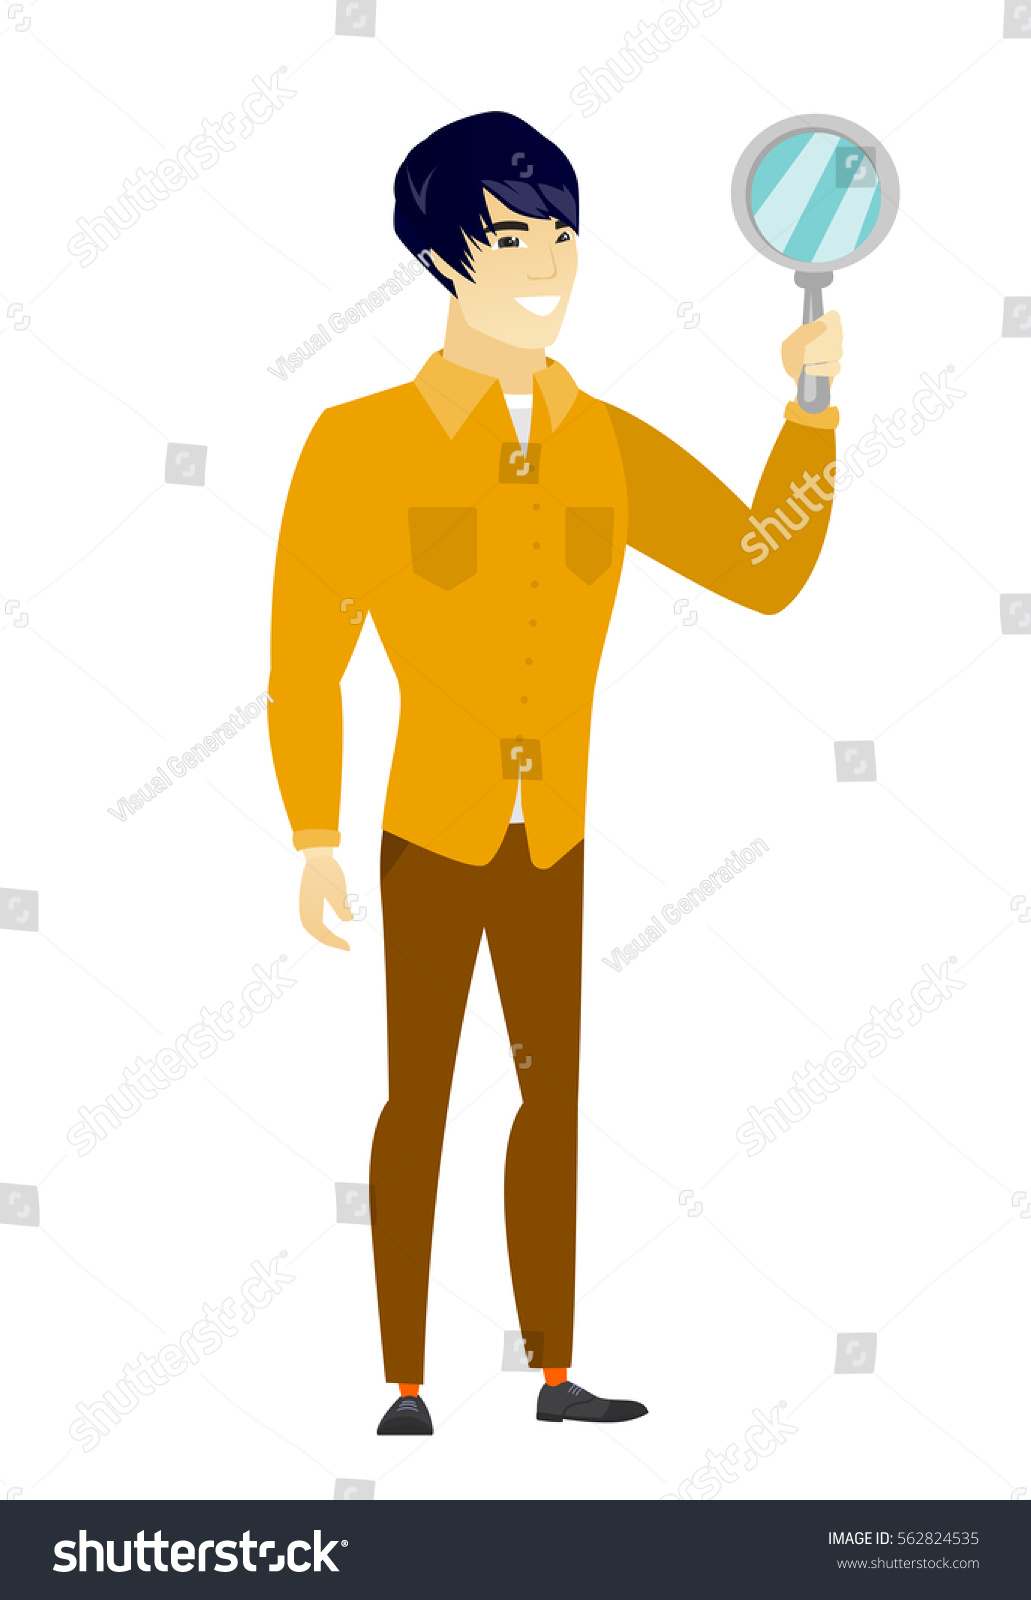 man holding a mirror. asian business man holding hand mirror. full length of looking at himself in a mirror